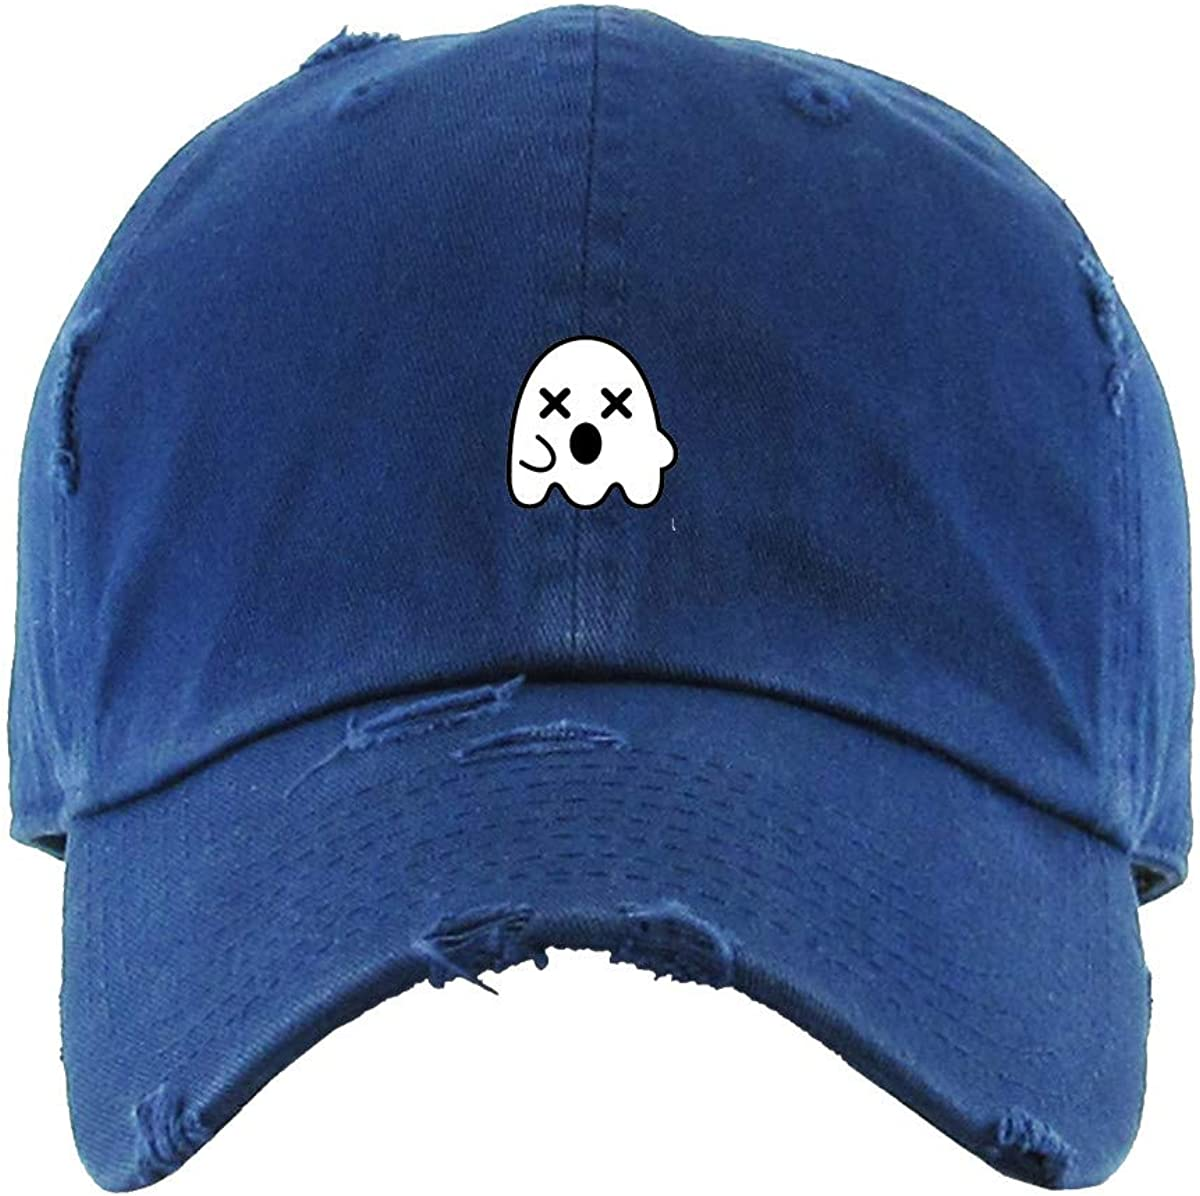 Dead Ghost Vintage Baseball Cap Cotton Embroidered Max 63% OFF Adjustable Di Product